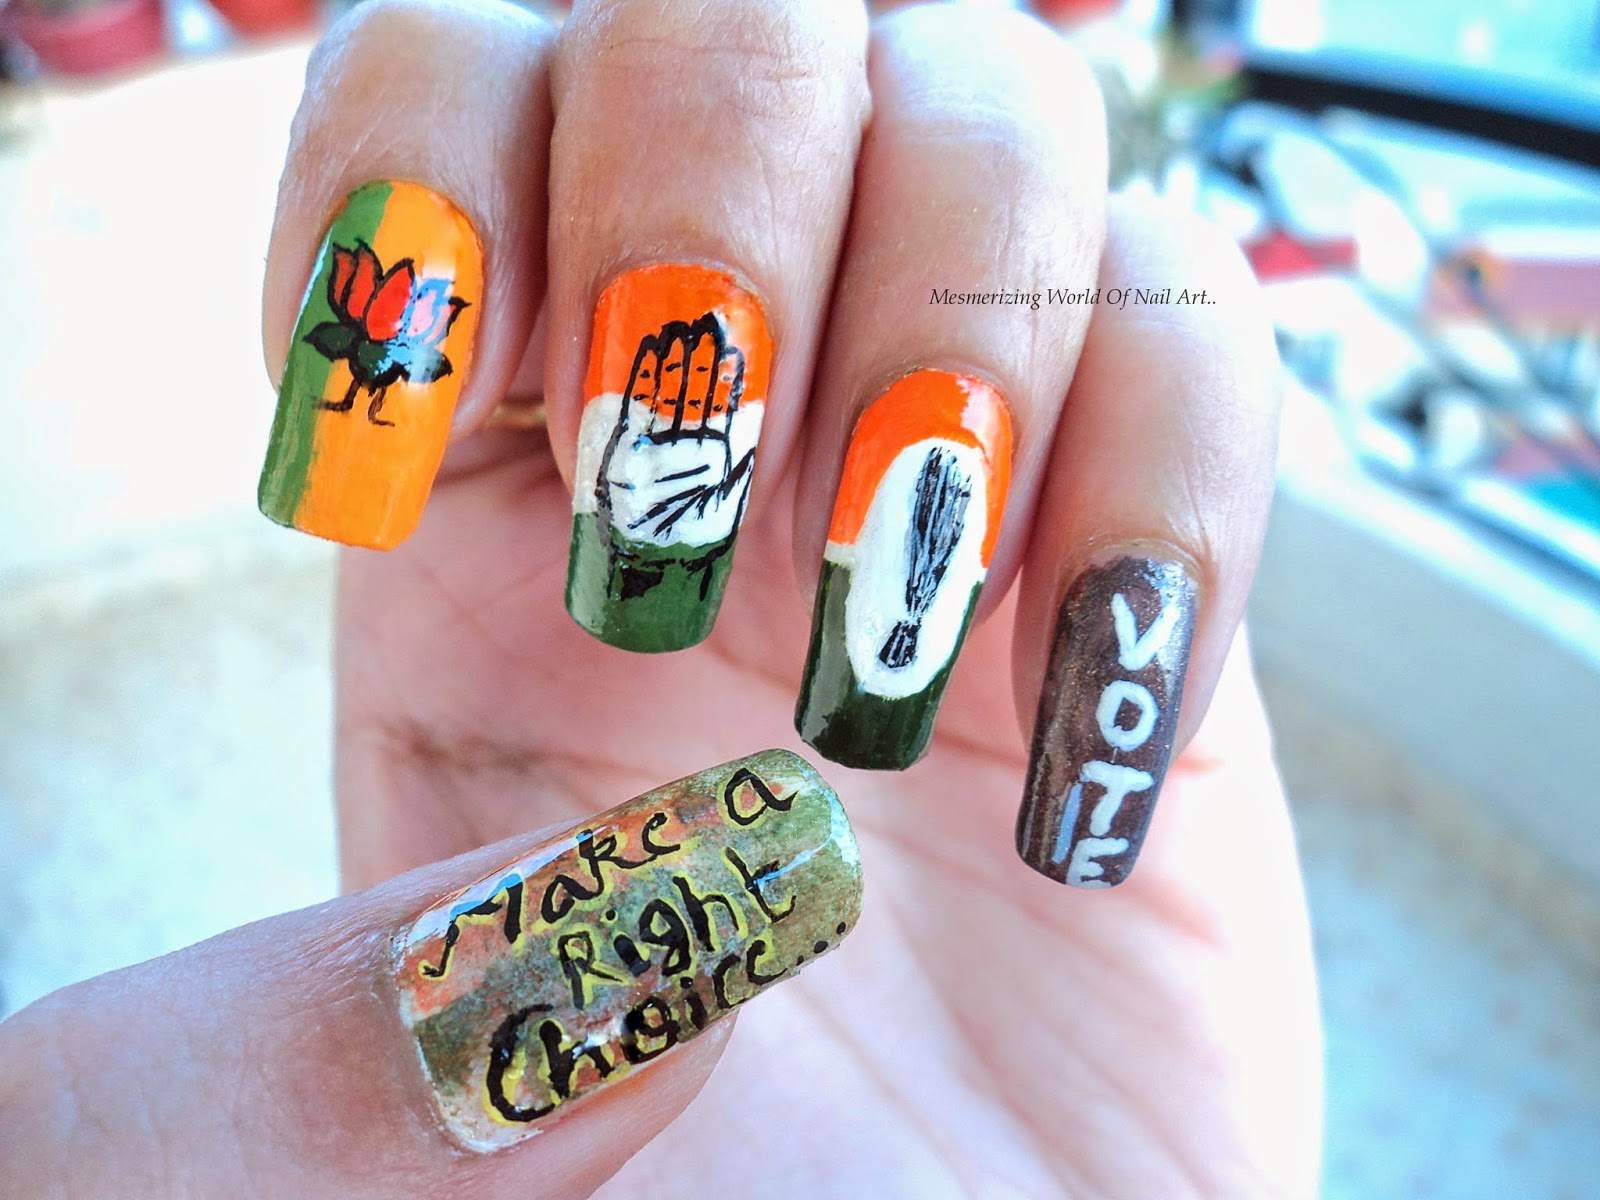 Mesmerizing World Of Nail Art Go Indiavote